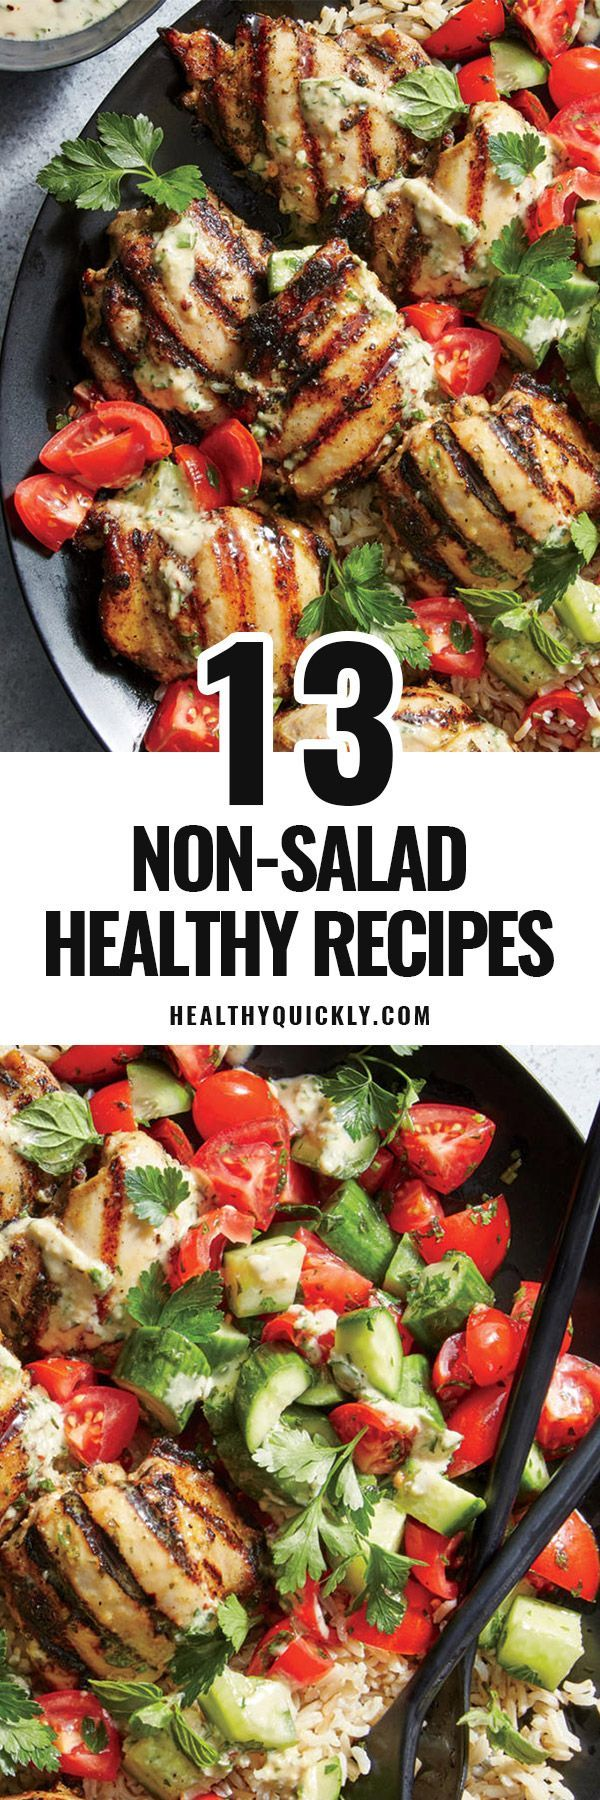 If you understand how important is to eat healthy but you hate salads... These recipes are for you. Perfect for lunch, dinner and even breakfast. On a budget and quite easy to make. These meals are great for a weightloss and to keep your body light if you have a fitness or yoga session coming soon.